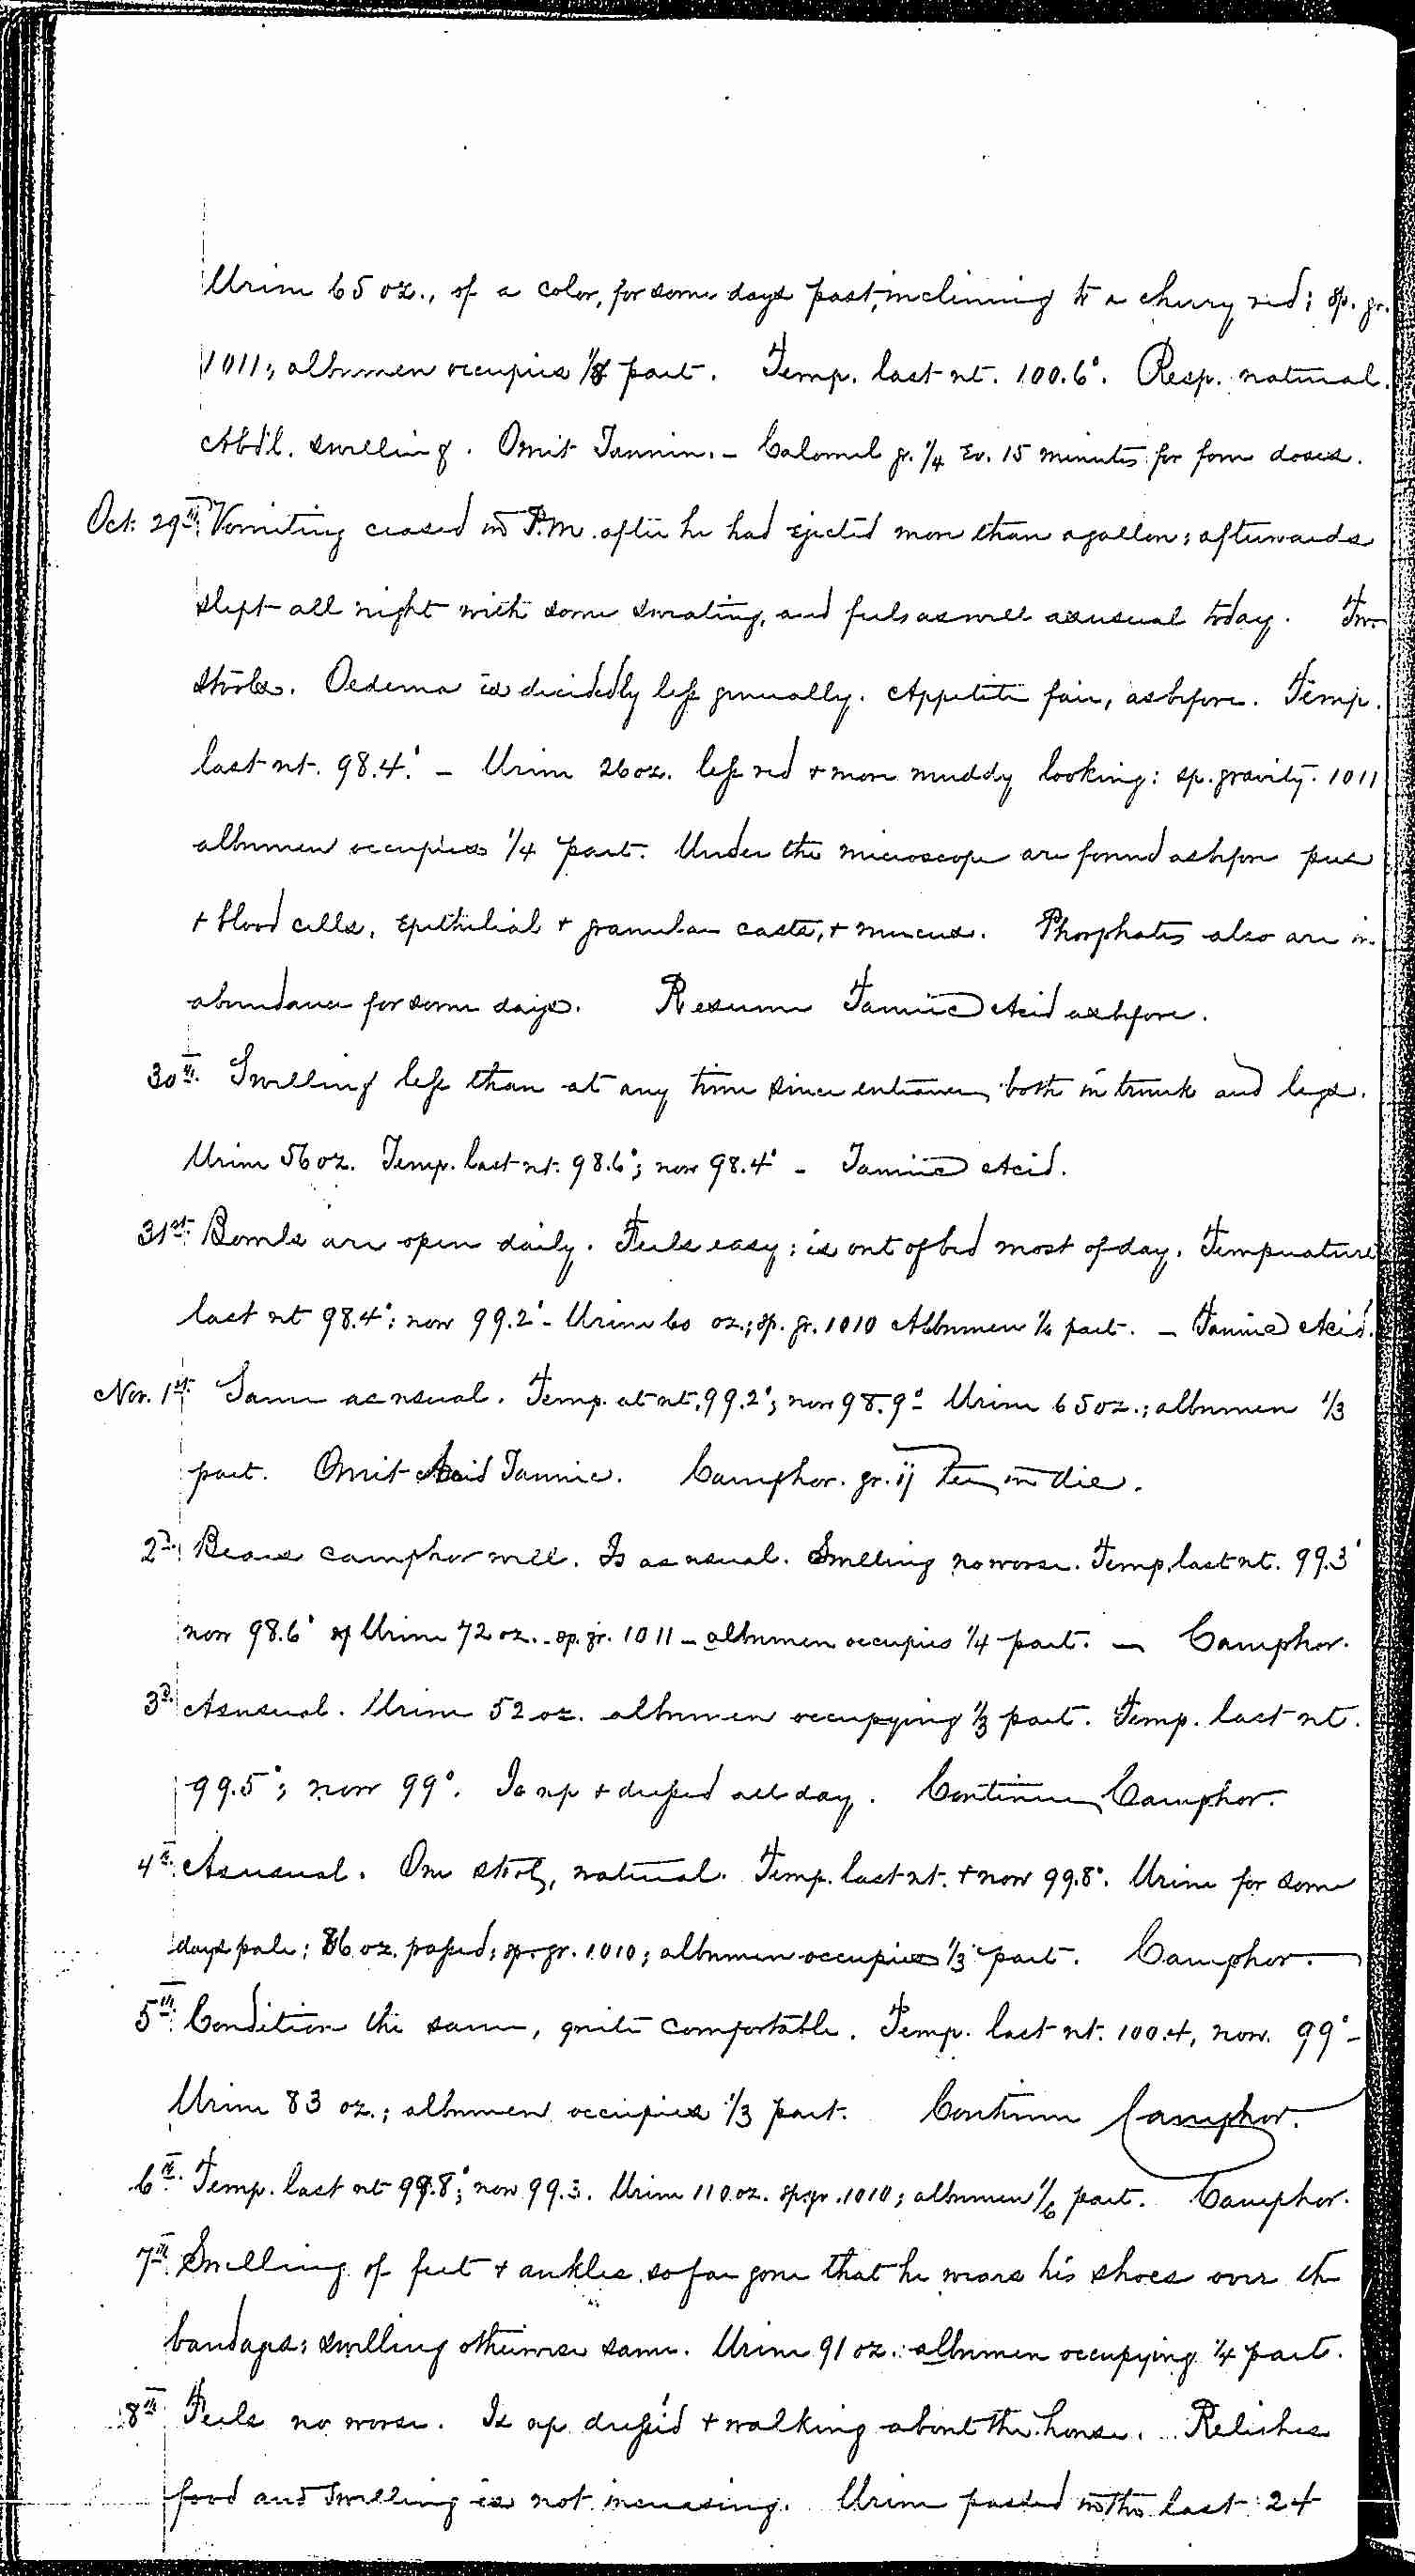 Entry for Bernard Coyne (page 8 of 13) in the log Hospital Tickets and Case Papers - Naval Hospital - Washington, D.C. - 1868-69